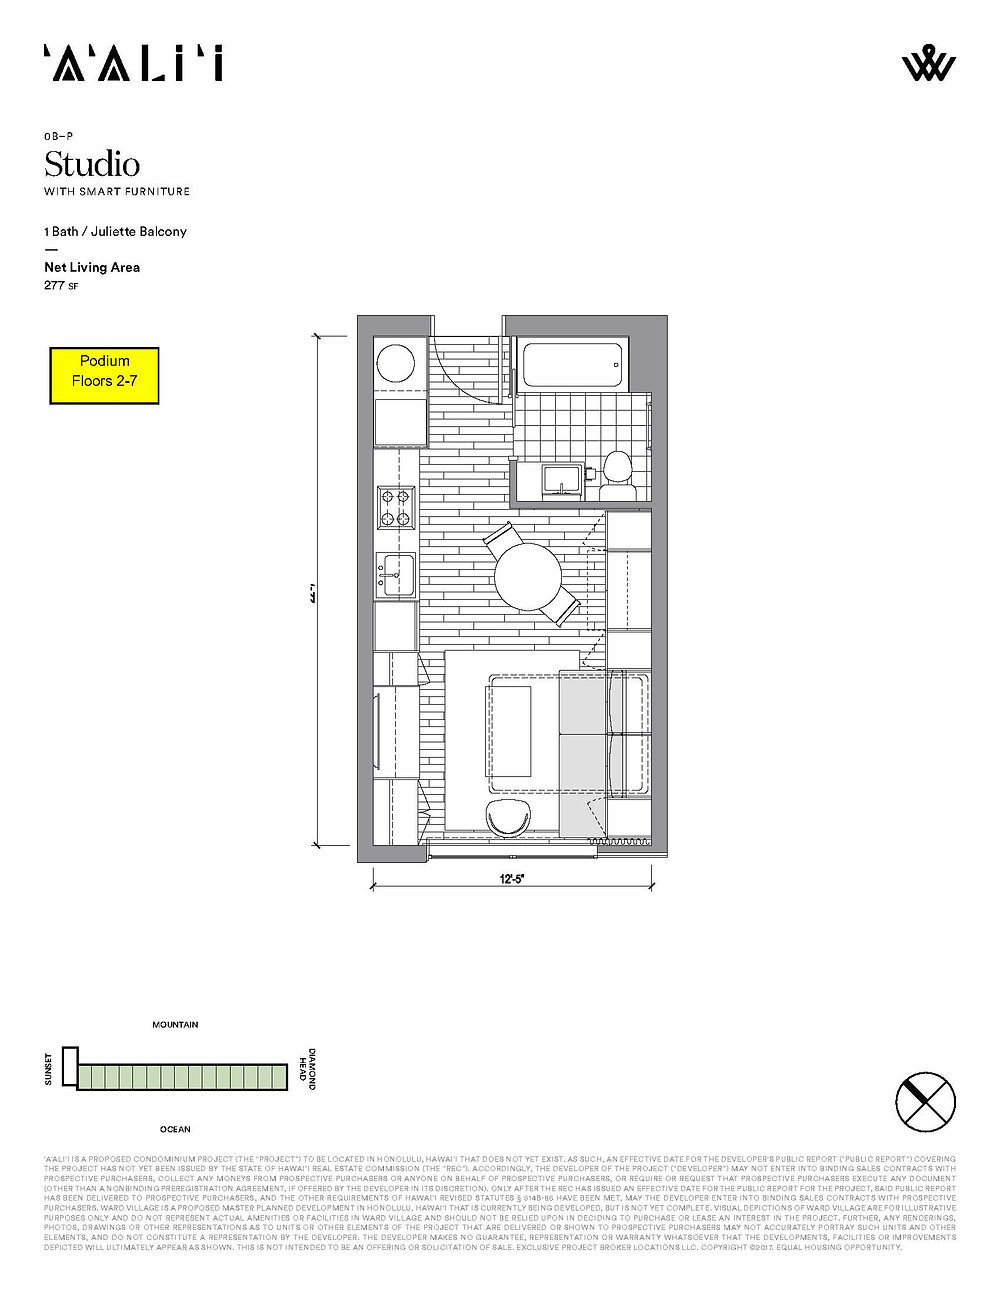 Podium Studio Floor Plan